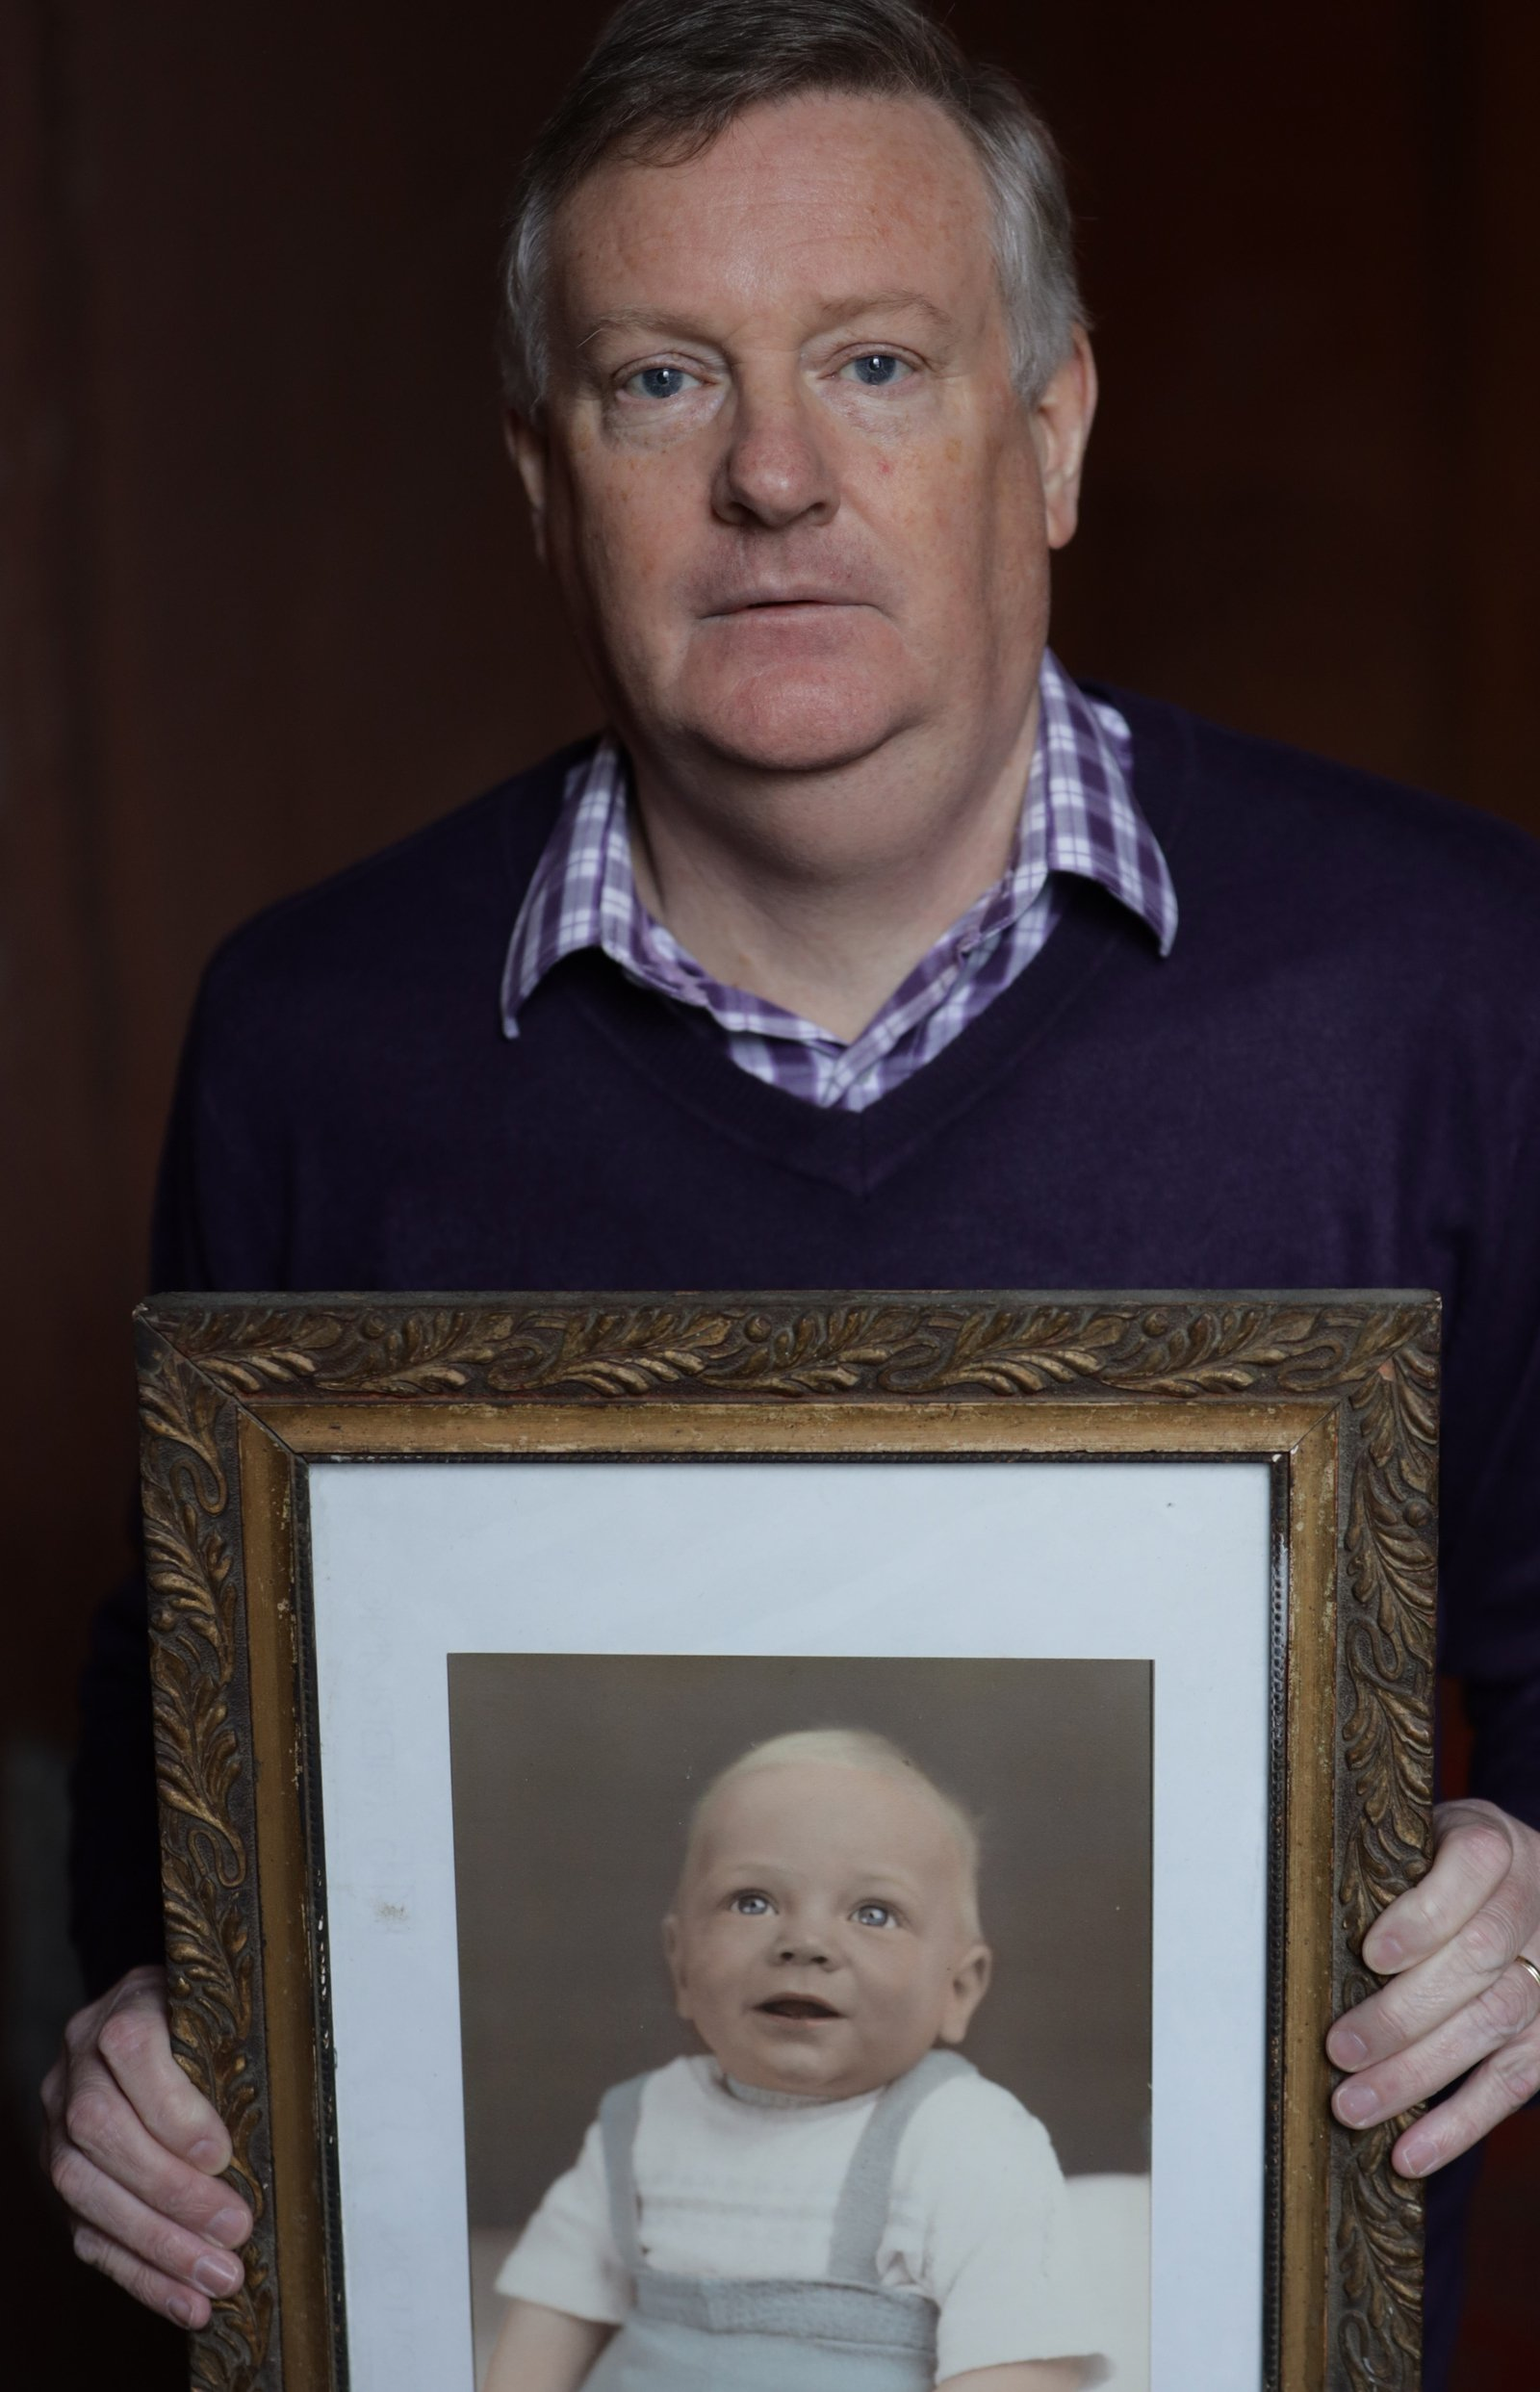 Image - Brian Webster spent nearly 60 years believing he was the natural son of Mary and Tom Webster from New York City